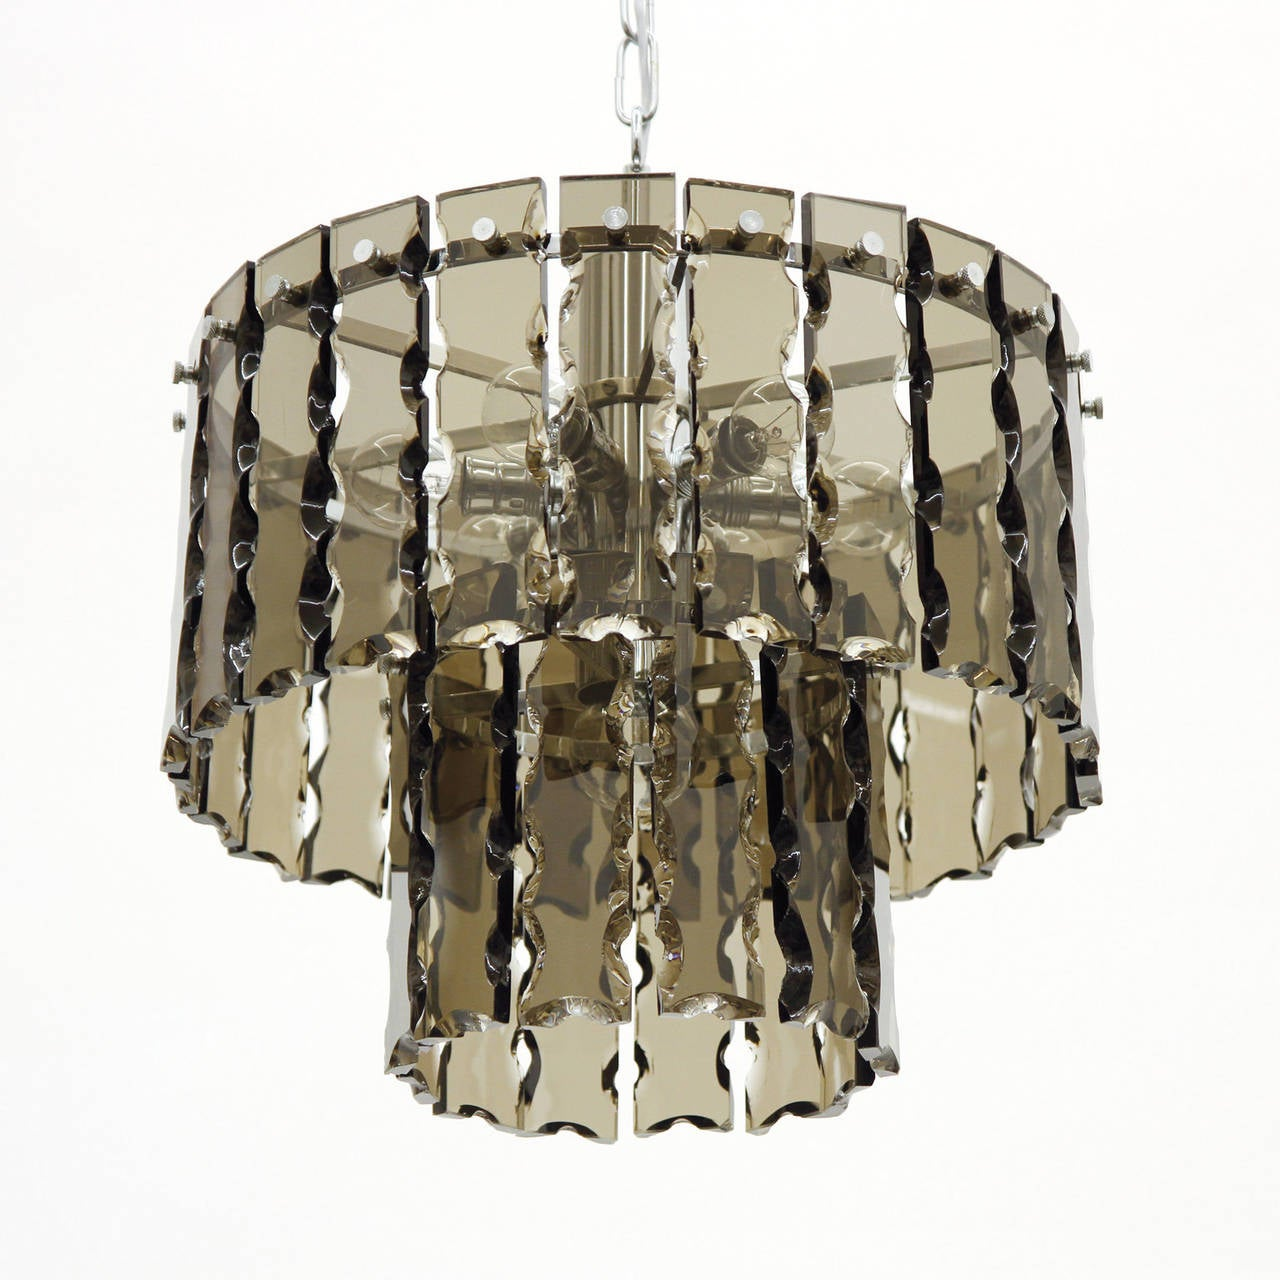 Fontana Arte Style Two-Tier Smoke Glass Chandelier 7